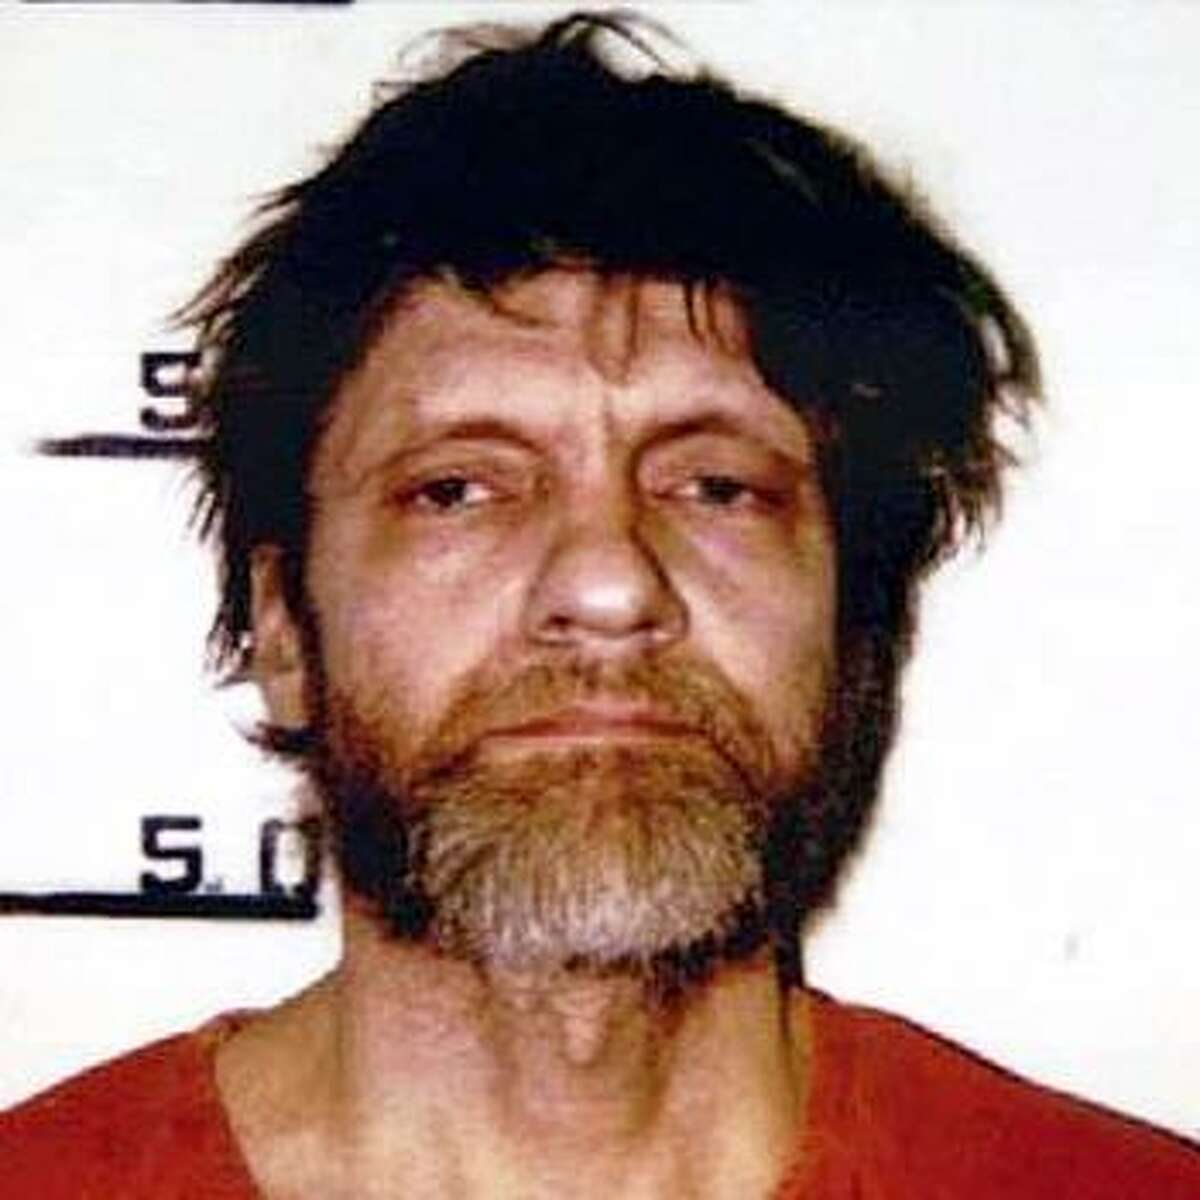 Ted Kaczynski, the Unabomber, was arrested after an investigation by the U.S. Postal Inspection Service.